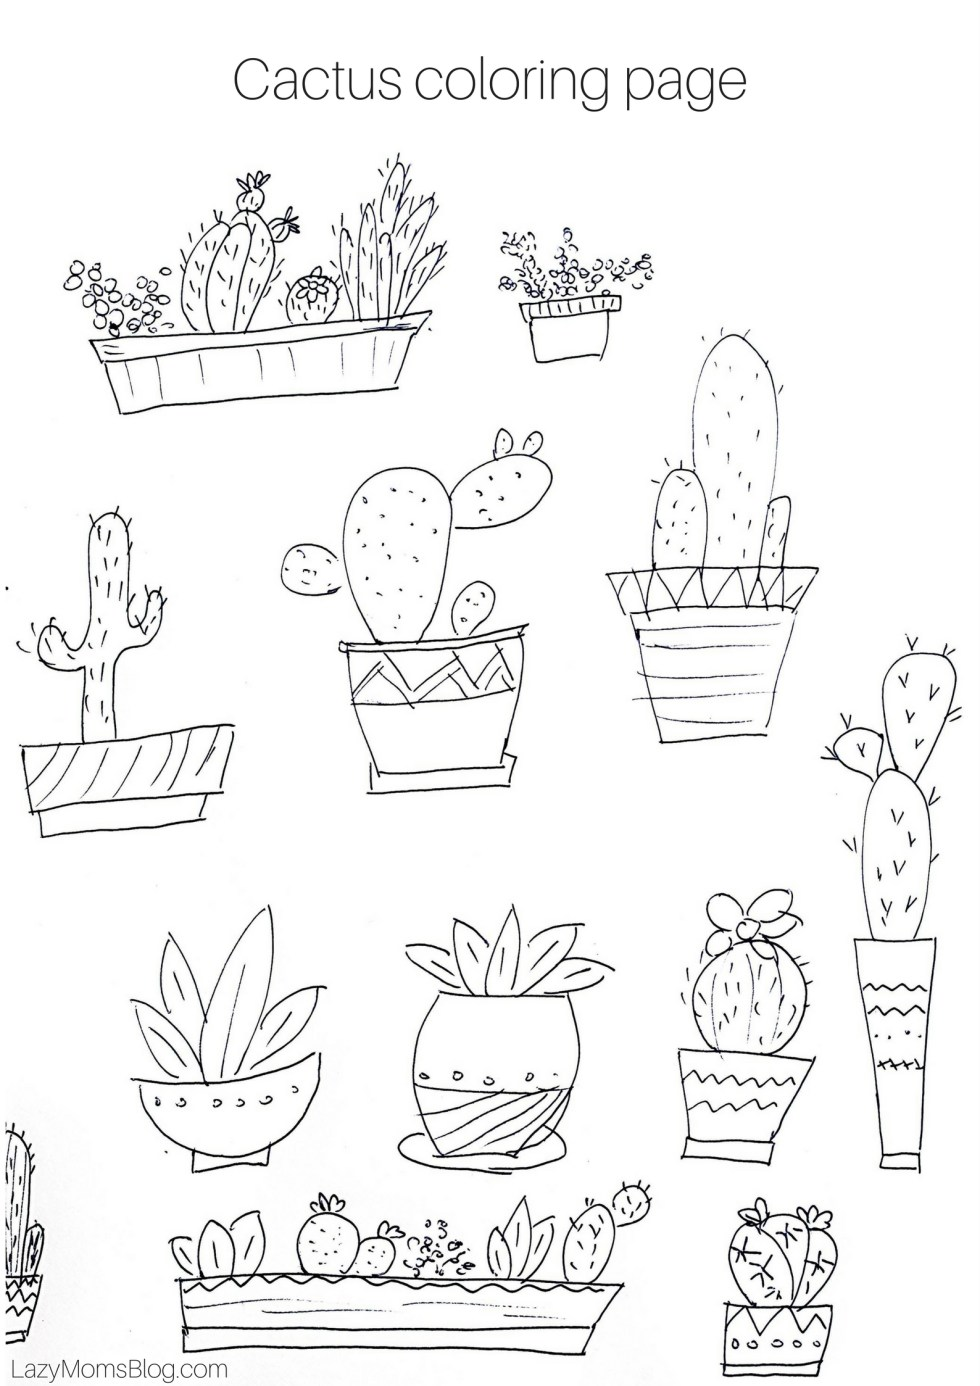 free printable Cactus coloring page